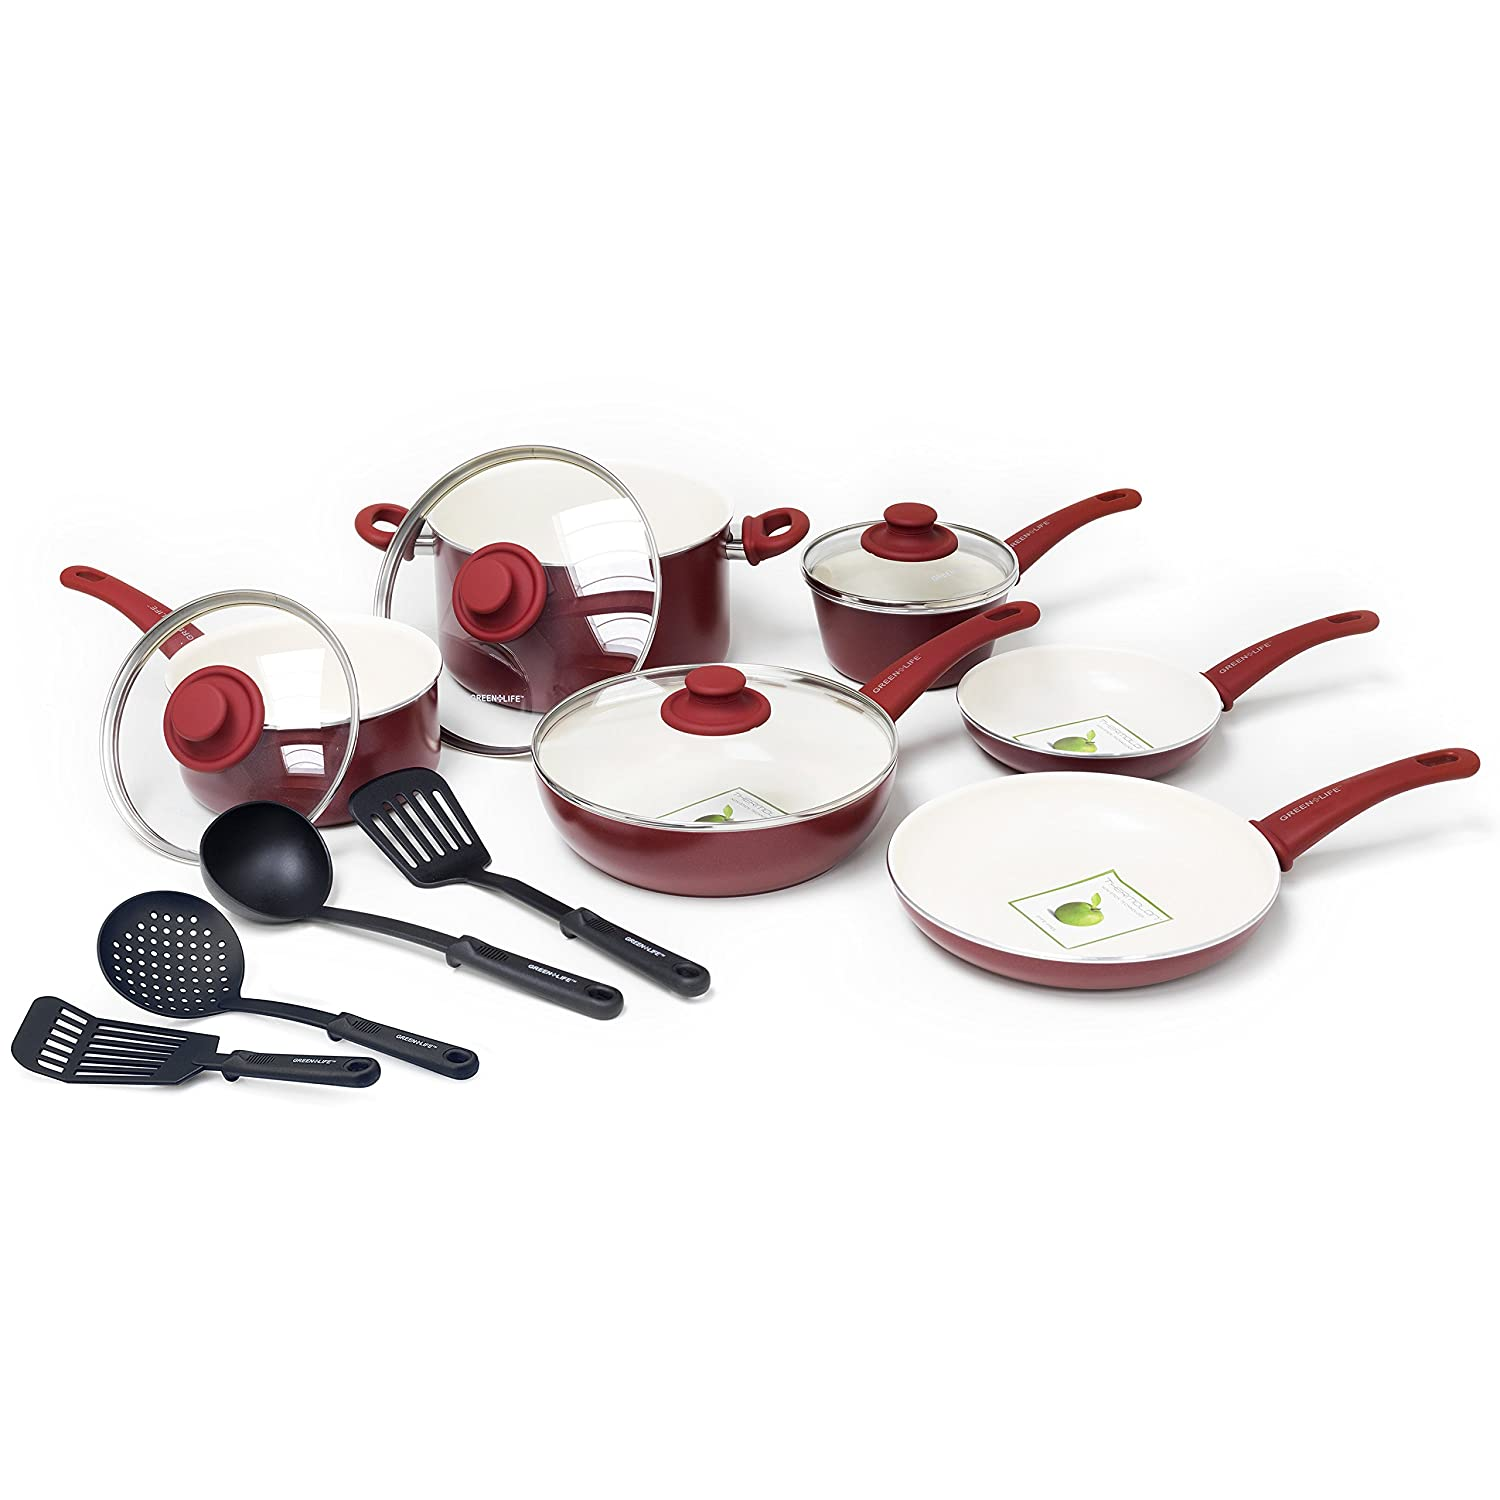 Top 10 Best Ceramic Cookware (2020 Reviews & Buying Guide) 7